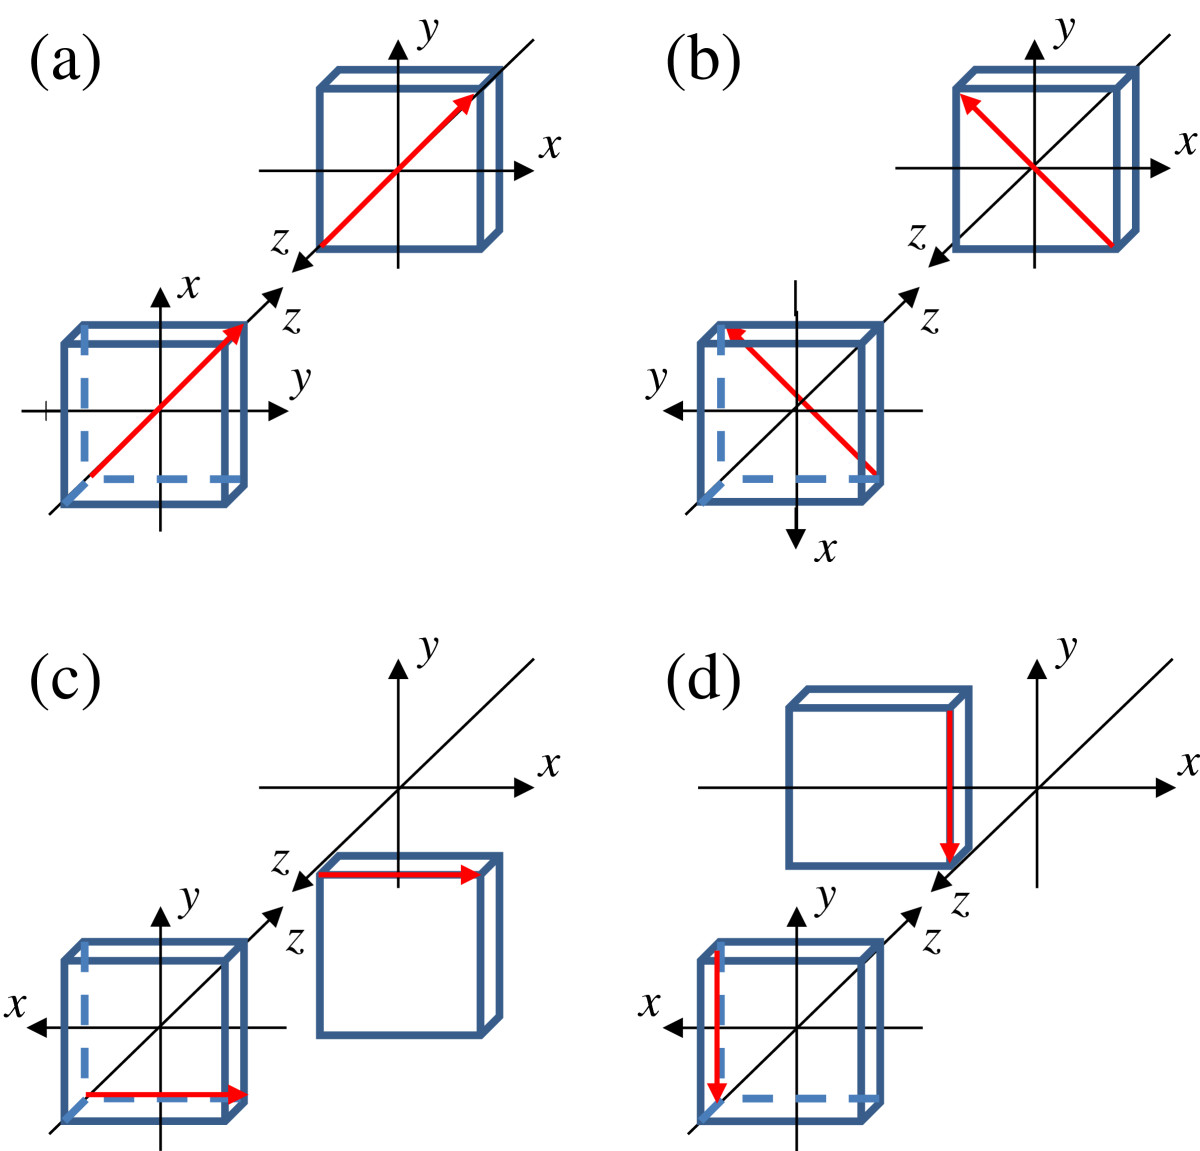 https://static-content.springer.com/image/art%3A10.1186%2F1556-276X-8-275/MediaObjects/11671_2012_Article_1634_Fig5_HTML.jpg